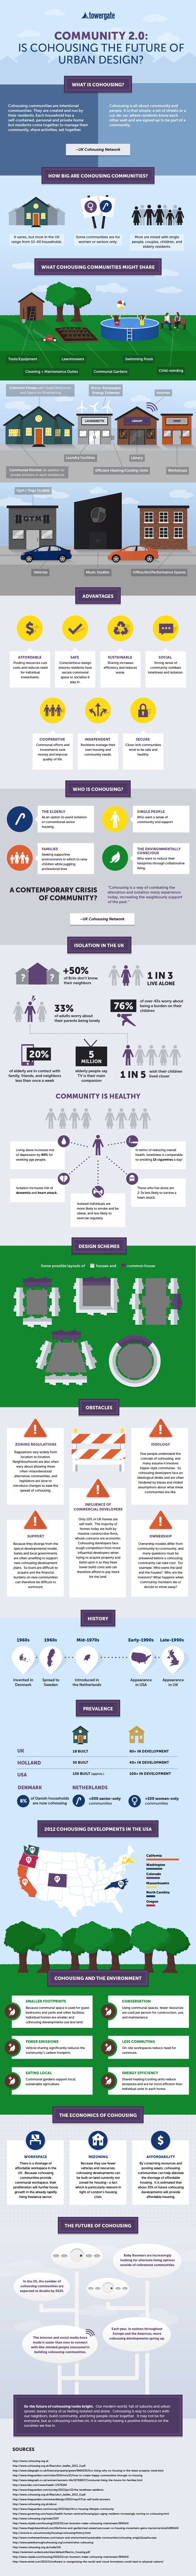 Cohousing The Sharing Economy For Housing Explained In An Infographic Sharing Economy Co Housing Co Housing Community